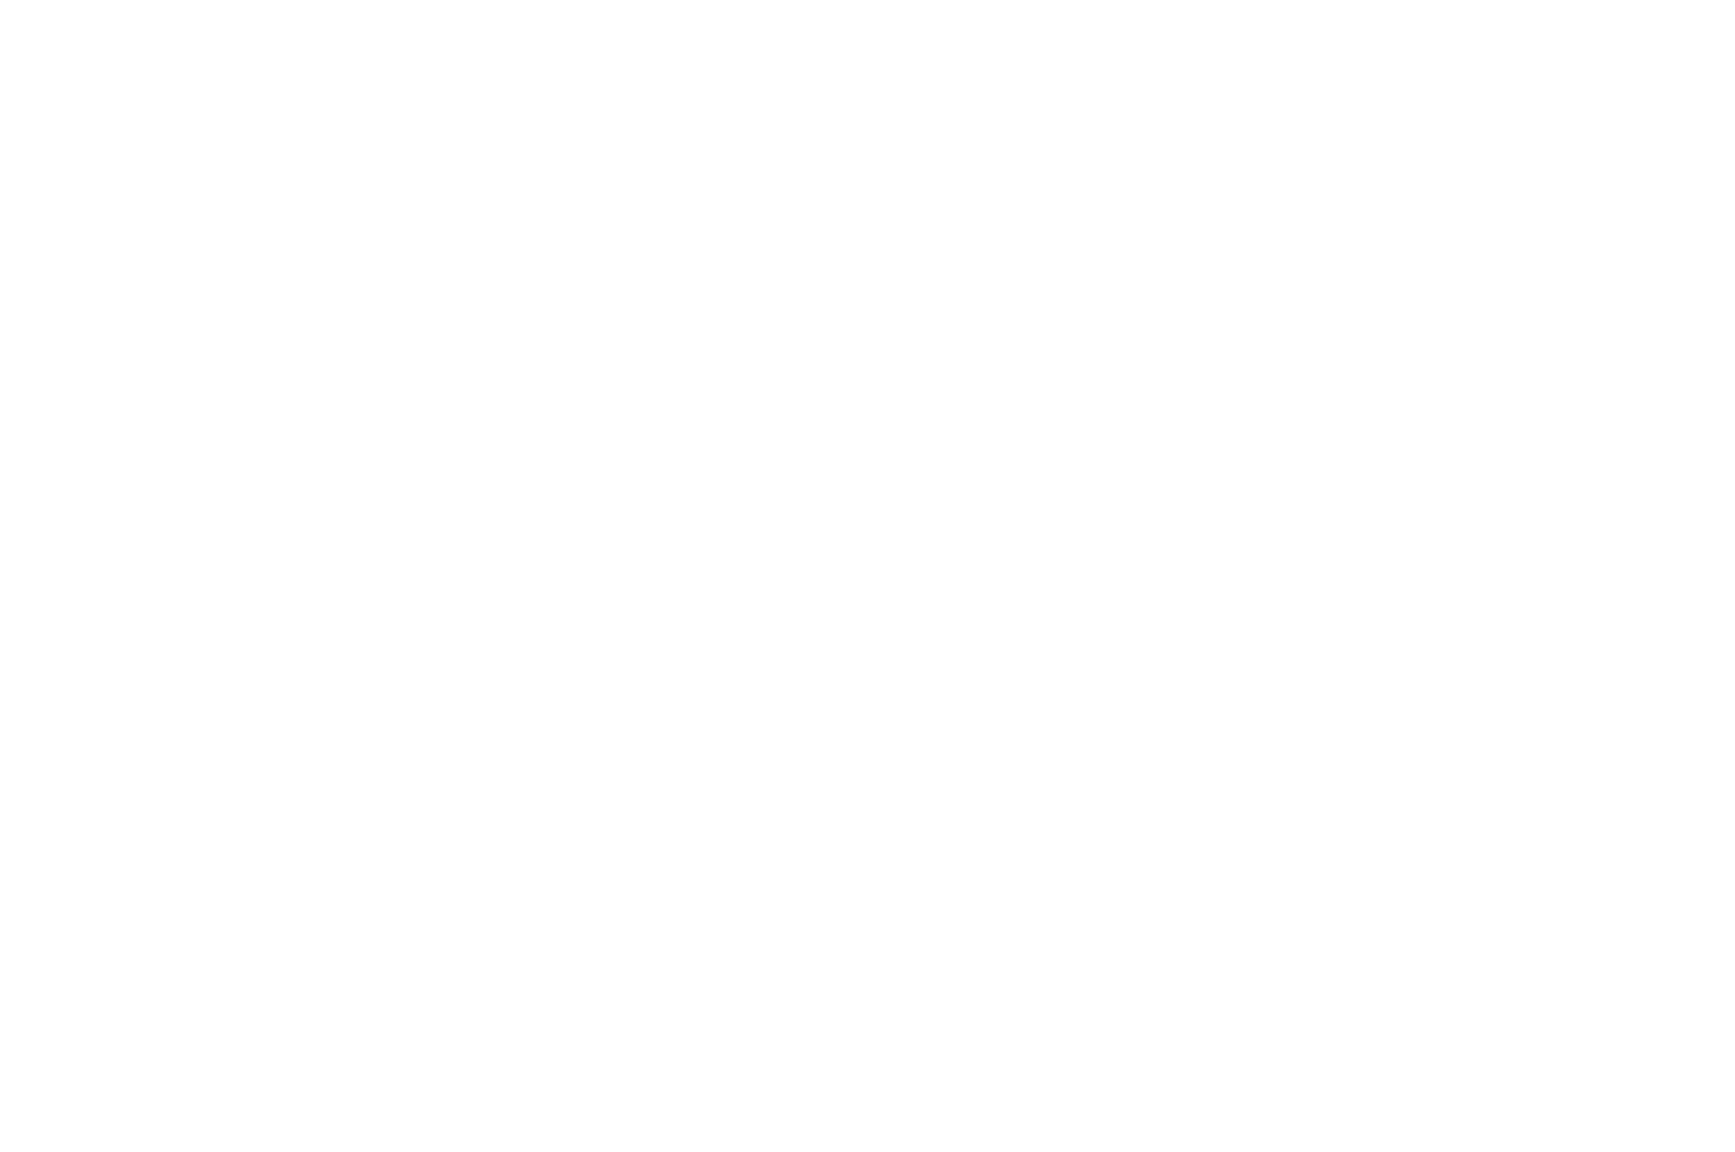 Inside Out: Toronto LGBT Film Festival - May 26, 2018